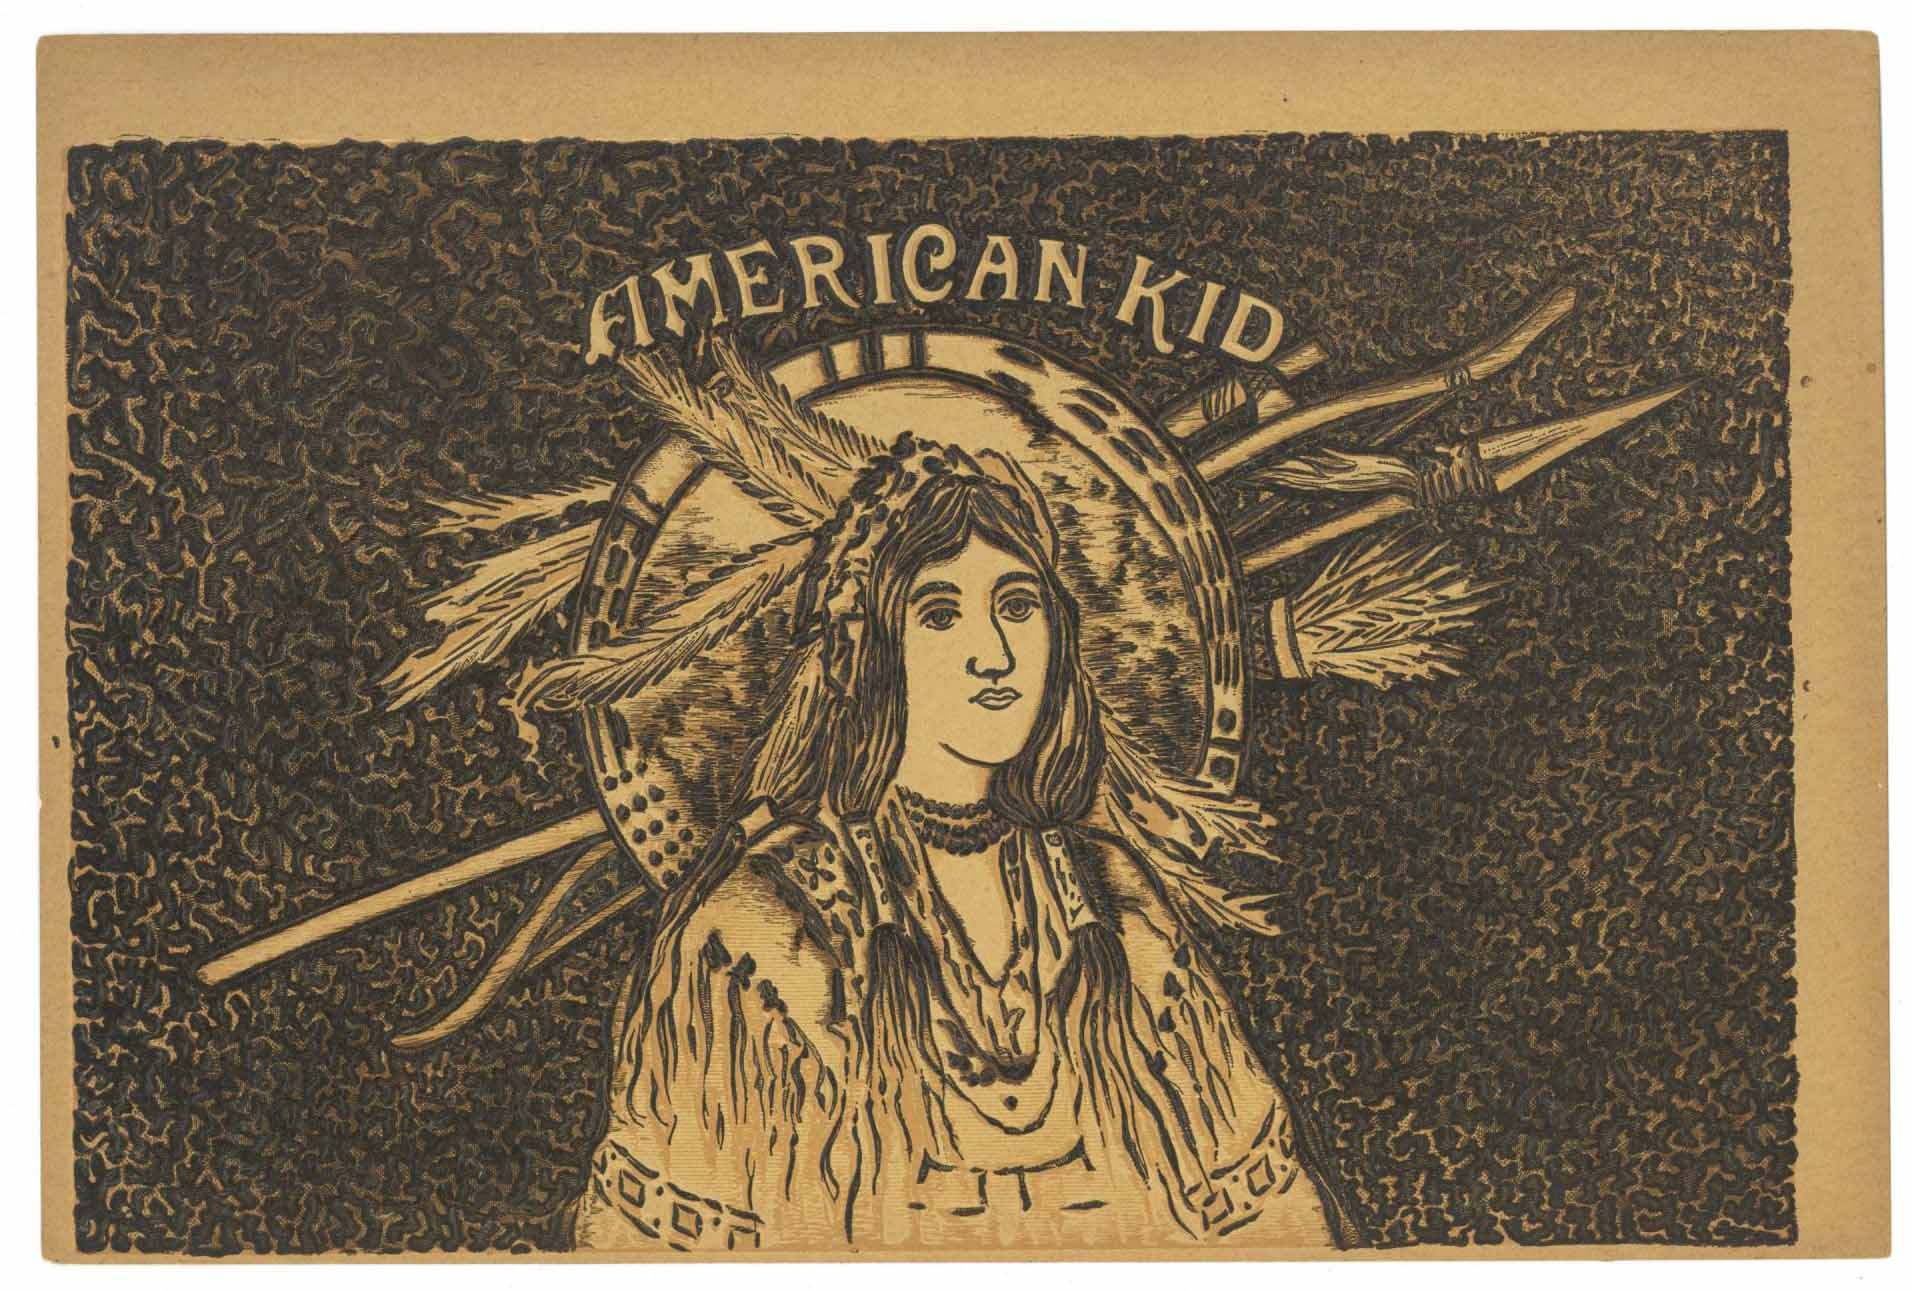 American Kid Brand Inner Cigar Box Label